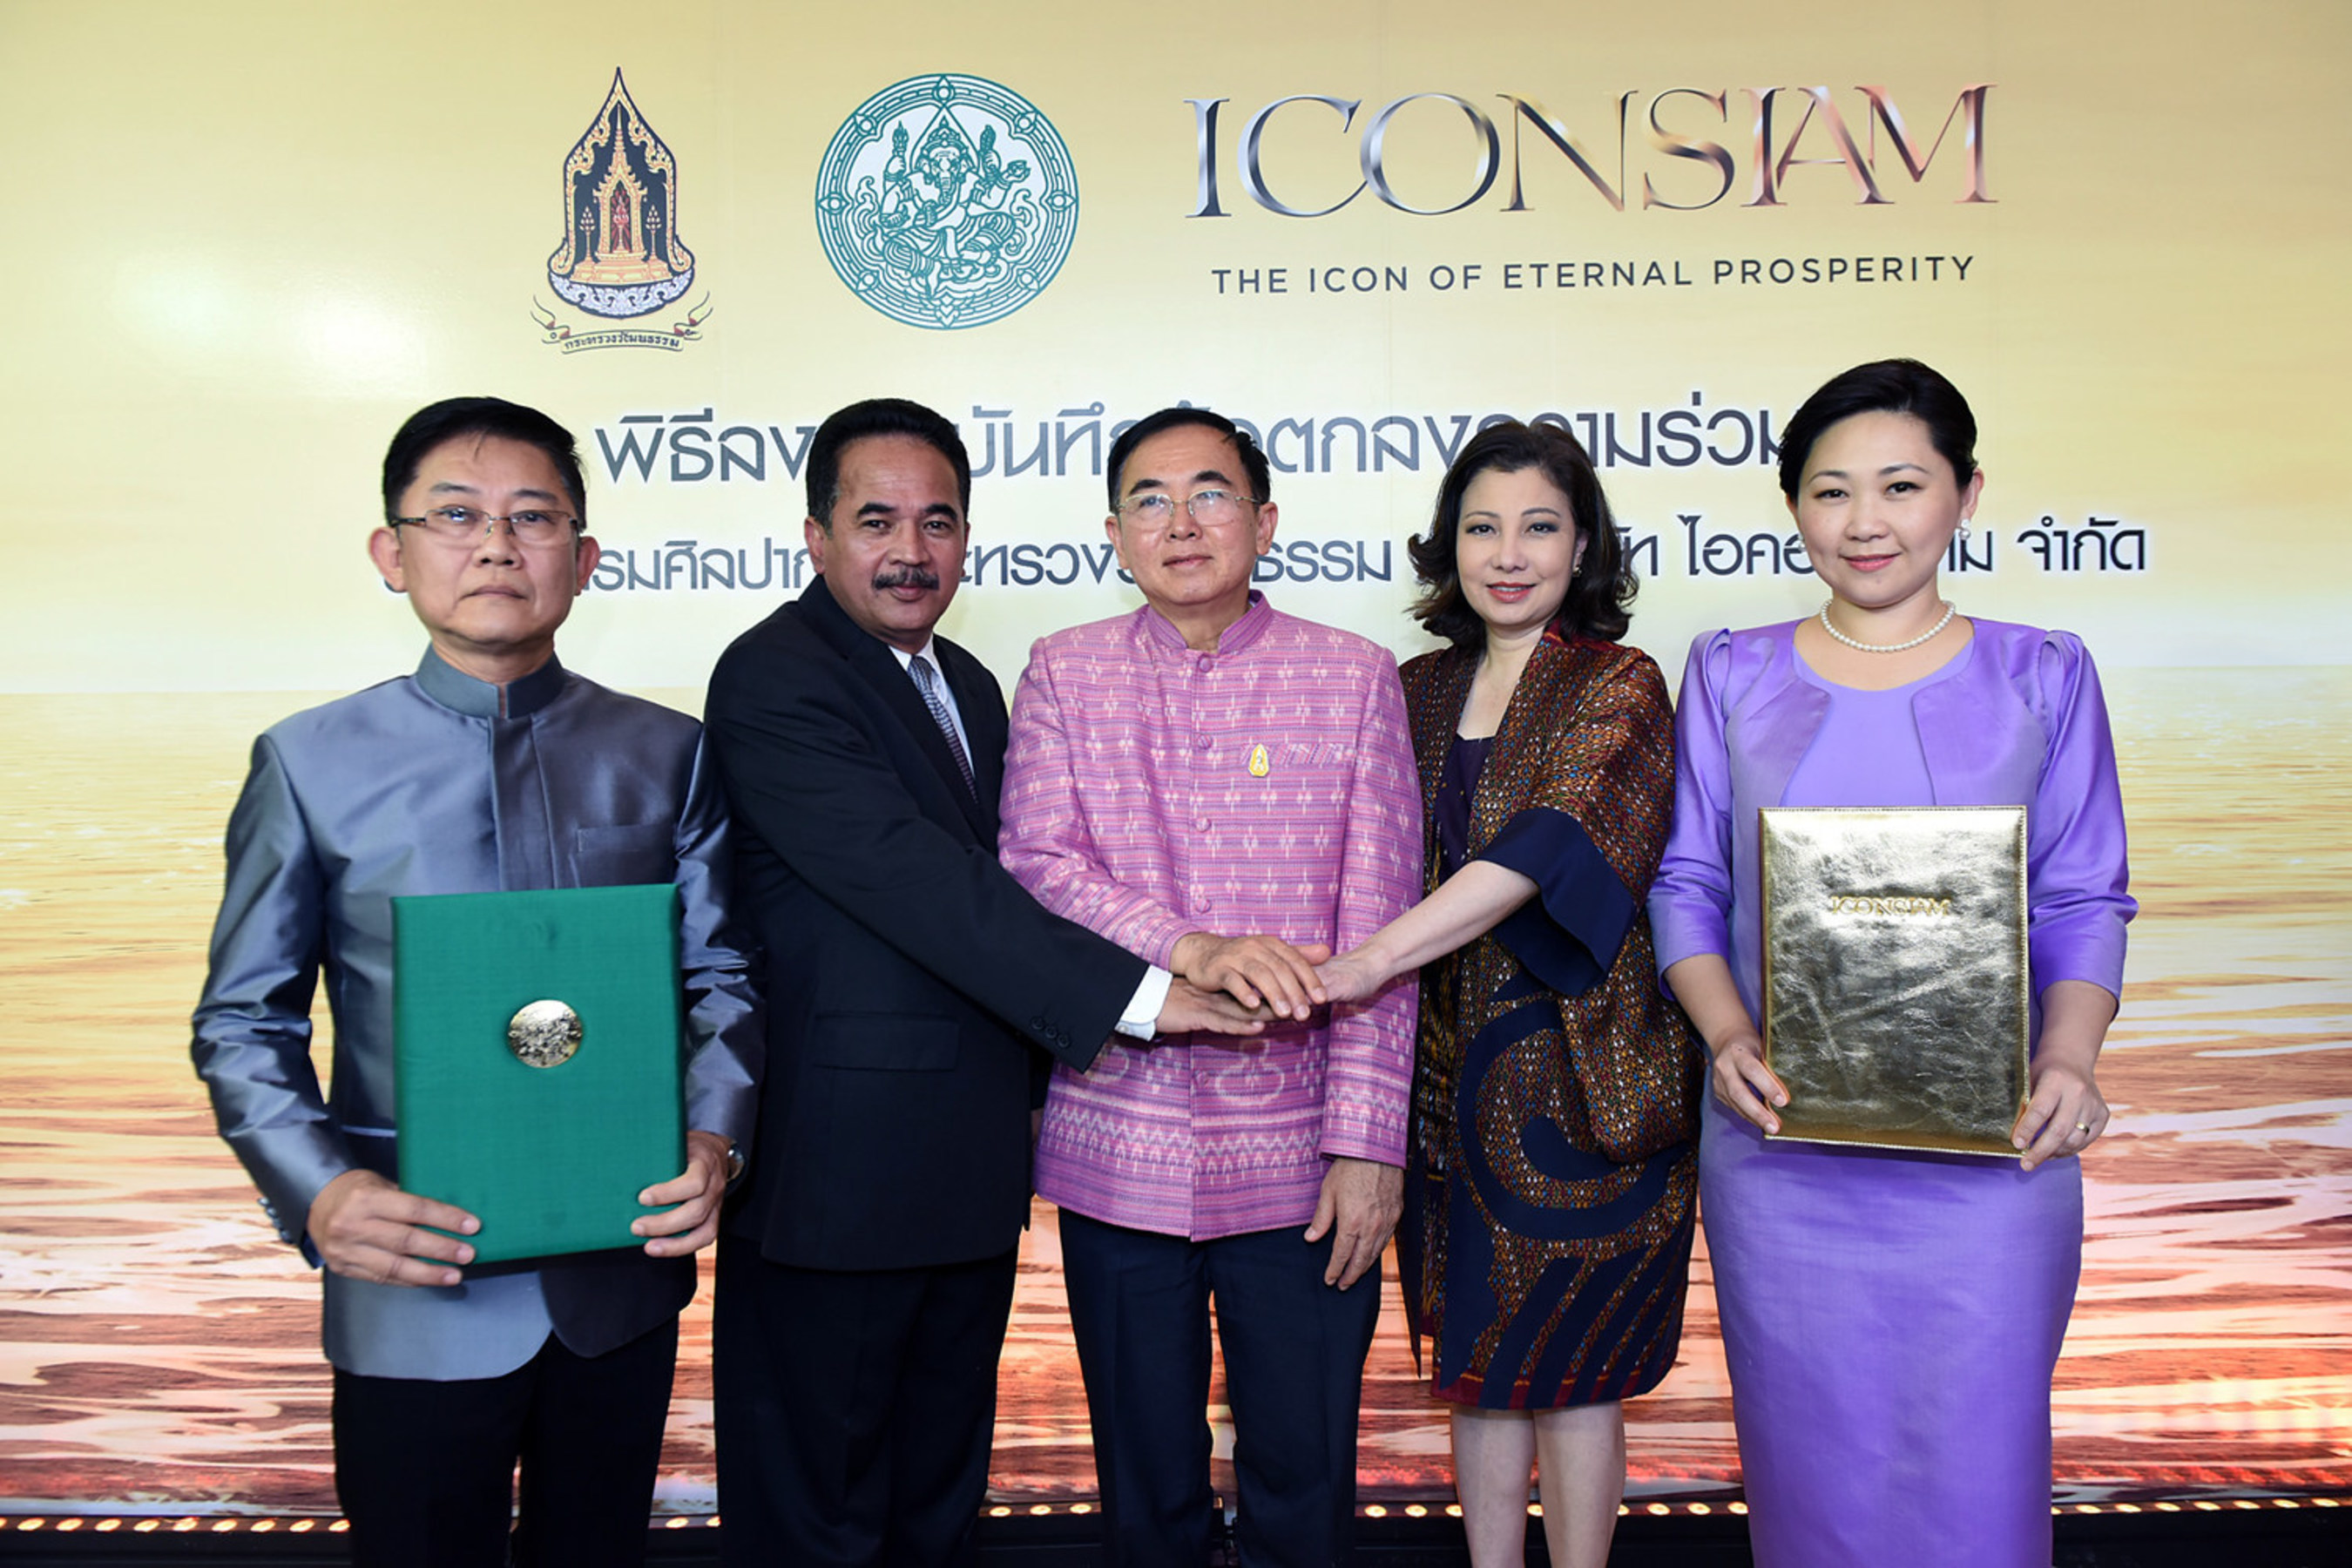 From left; Mr. Sahabhum Bhumtitterat; Deputy Director General of Fine Arts Department, Mr. Anan Shooshod; Director General of Fine Arts Department, Mr. Vira Rojpojchanarat; Minister of Culture Ministry, Mrs. Chadatip Chutrakul; Director of ICONSIAM Co., Ltd., and Mrs. Thippaporn Chearavanont Ahriyavraromp; Director of ICONSIAM Co., Ltd.